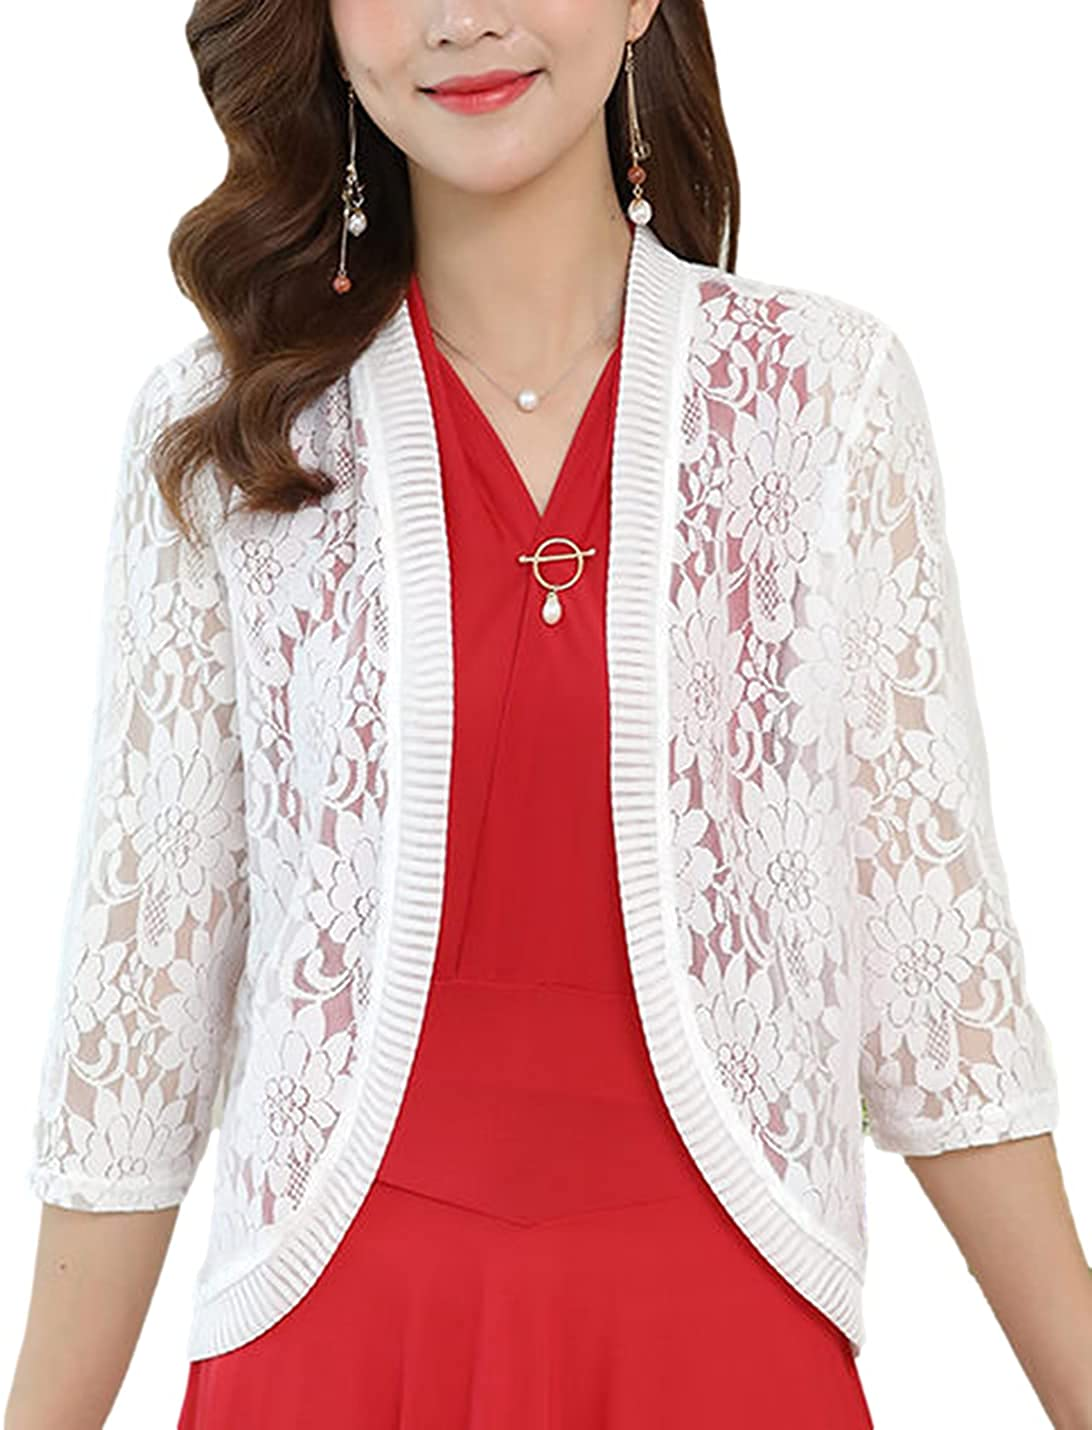 Omoone Womens 3/4 Sleeves Lace Crochet Cardigan Open Front Casual Shrug Cami Tops